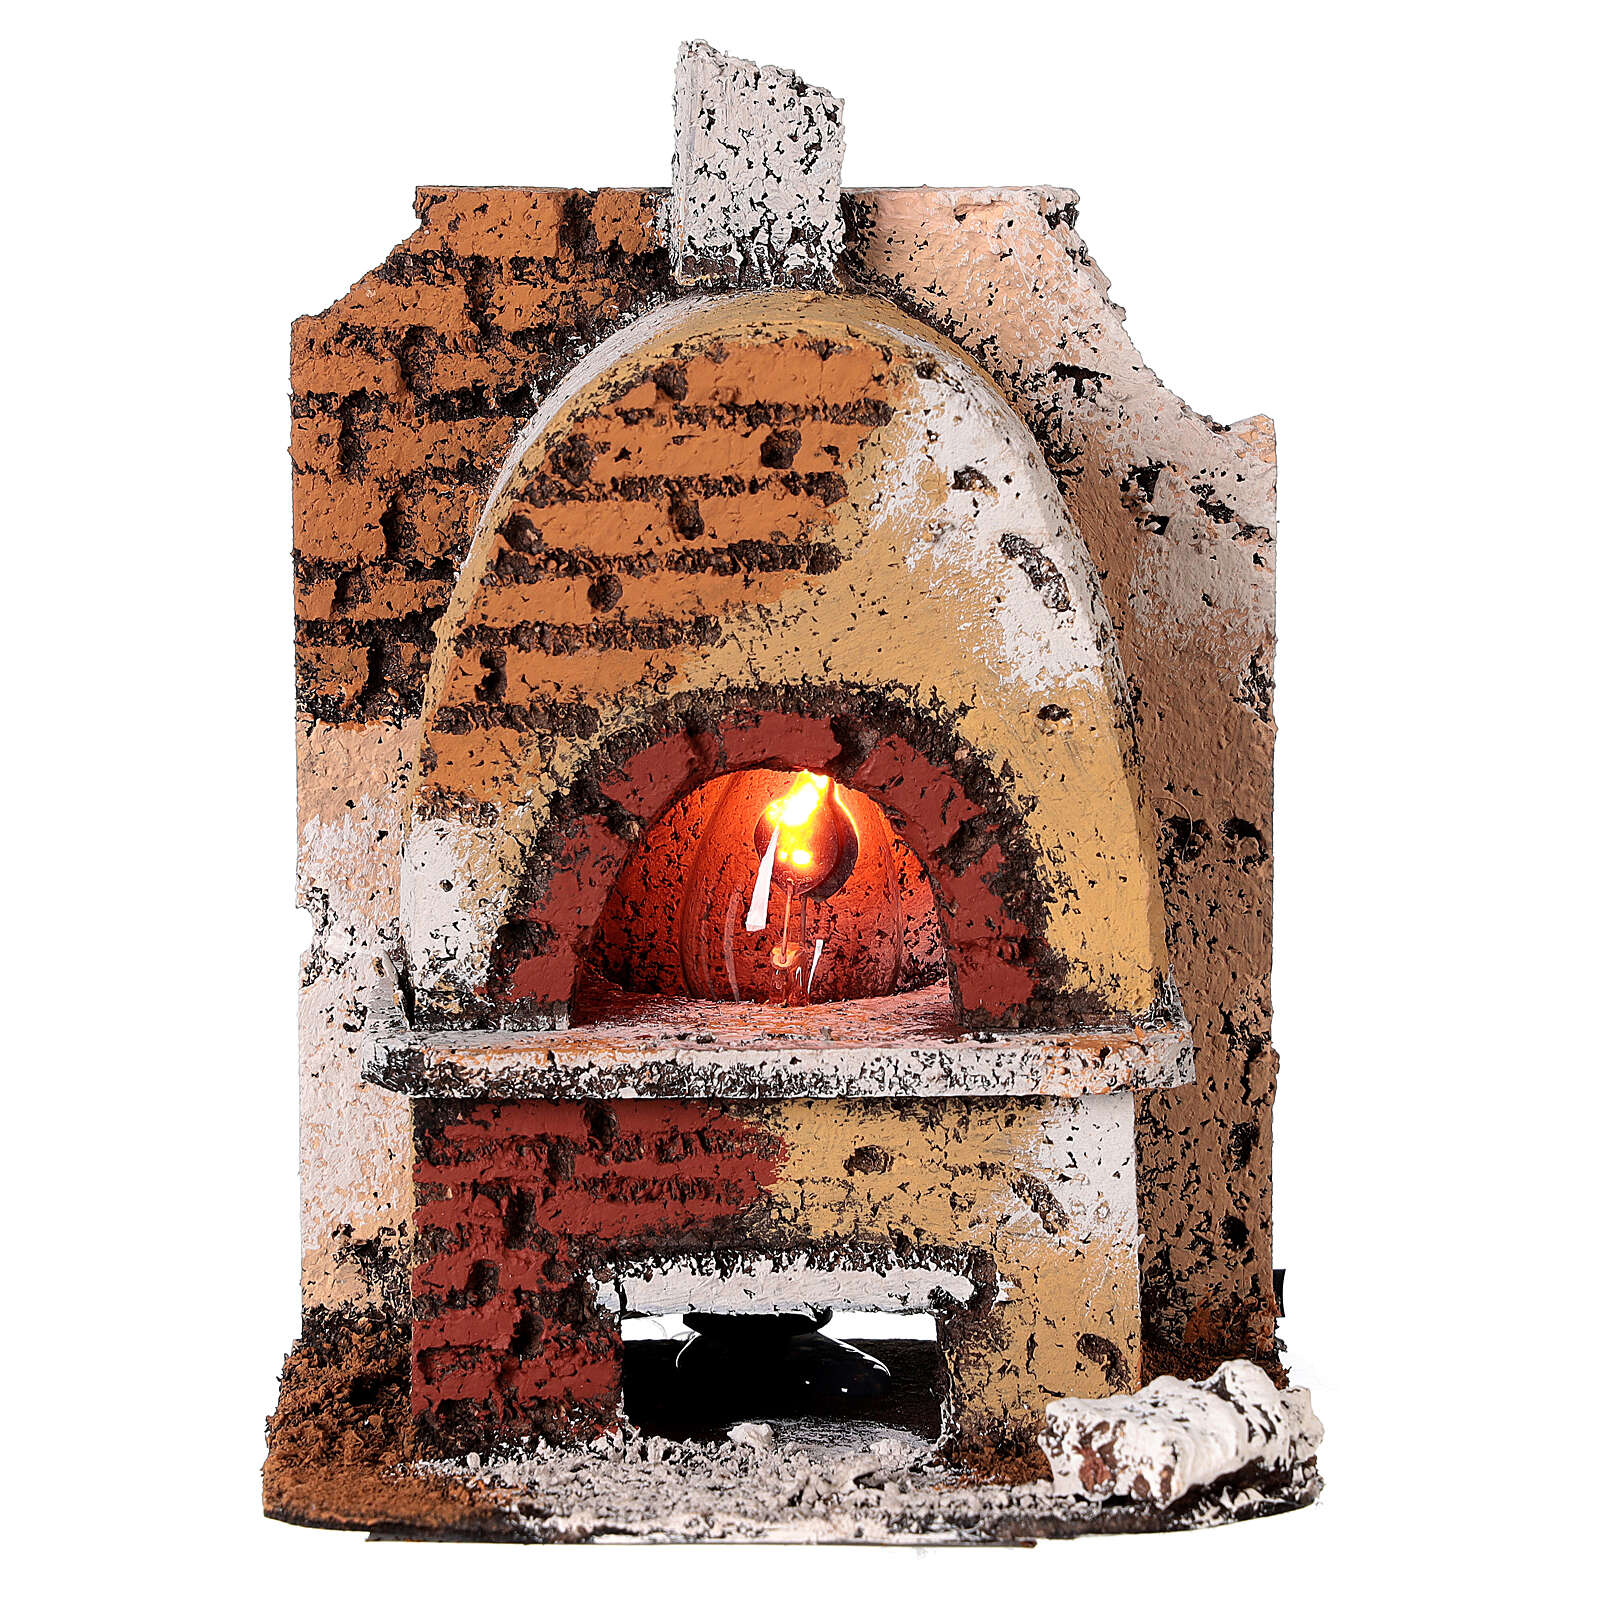 Cork oven with light fire effect 15x10x10 cm for Neapolitan Nativity Scene with 8-10 cm figurines 4